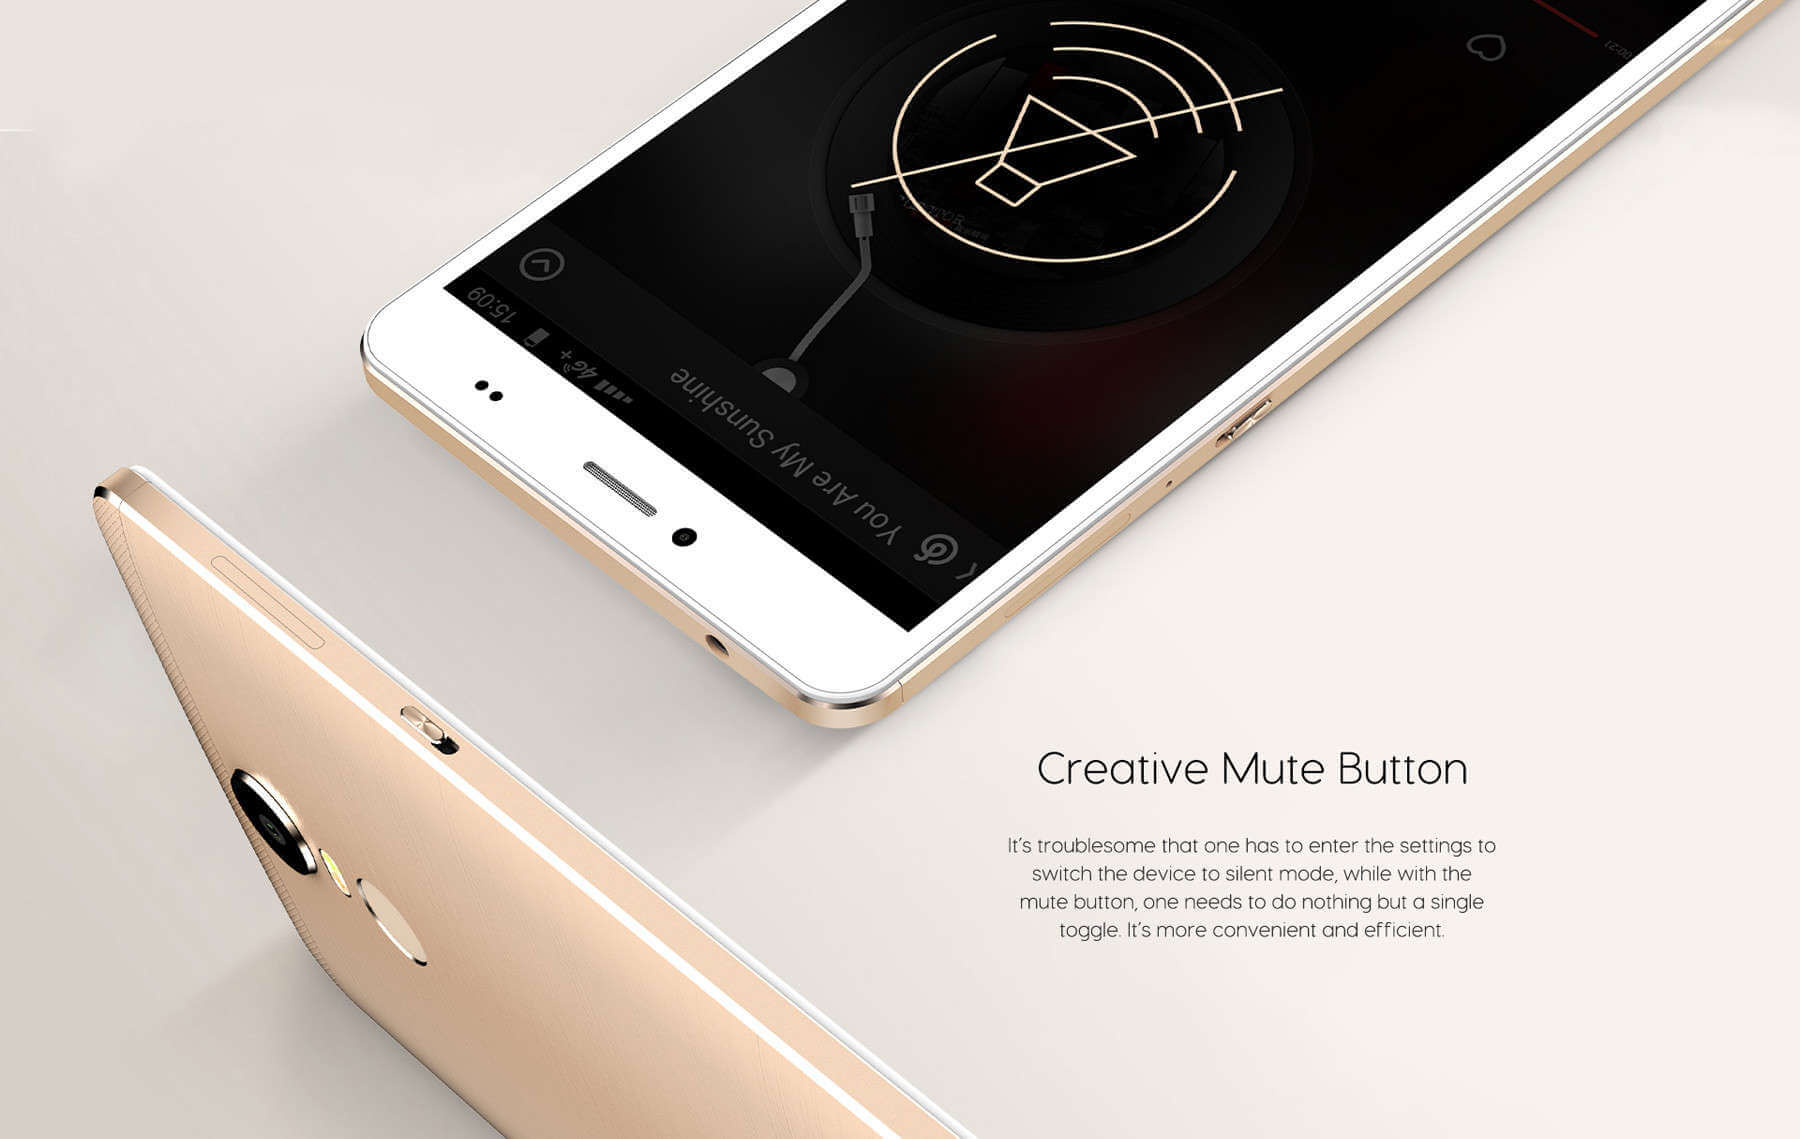 bluboo-maya-max-4g-phablet-mute-button